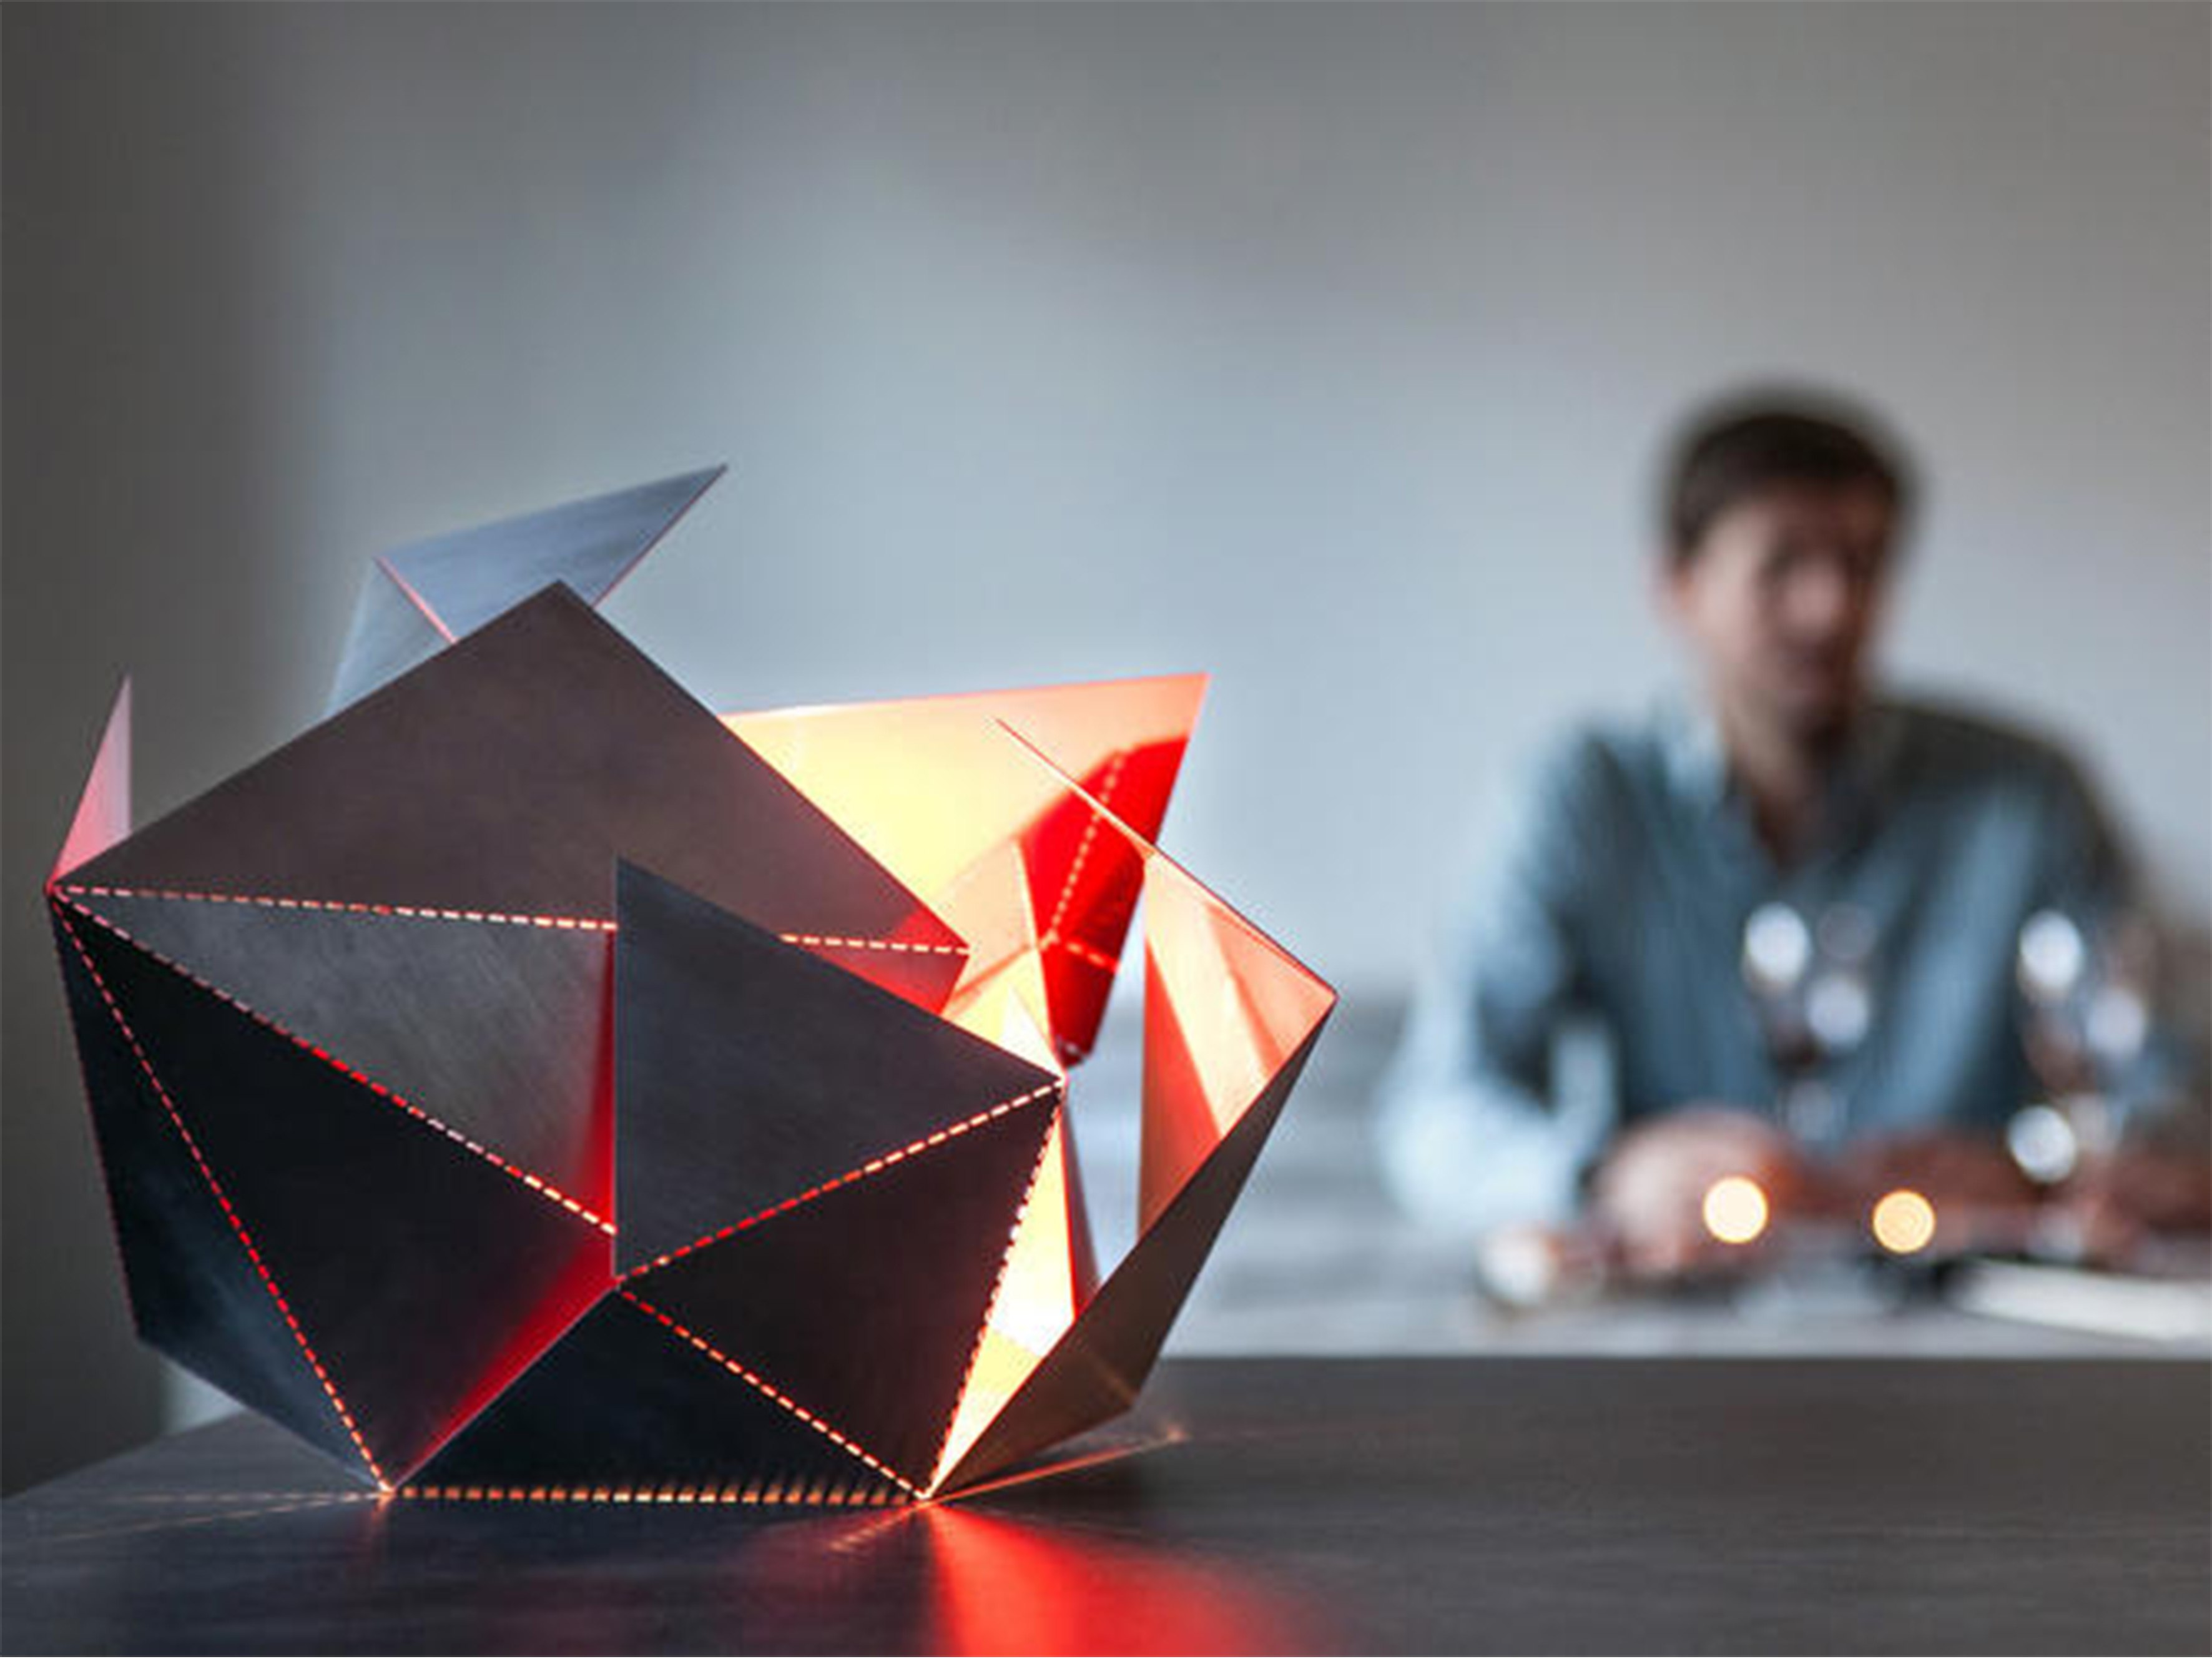 3052128-slide-s-3-the-folding-lamp-makes-origami-out-of-light copy